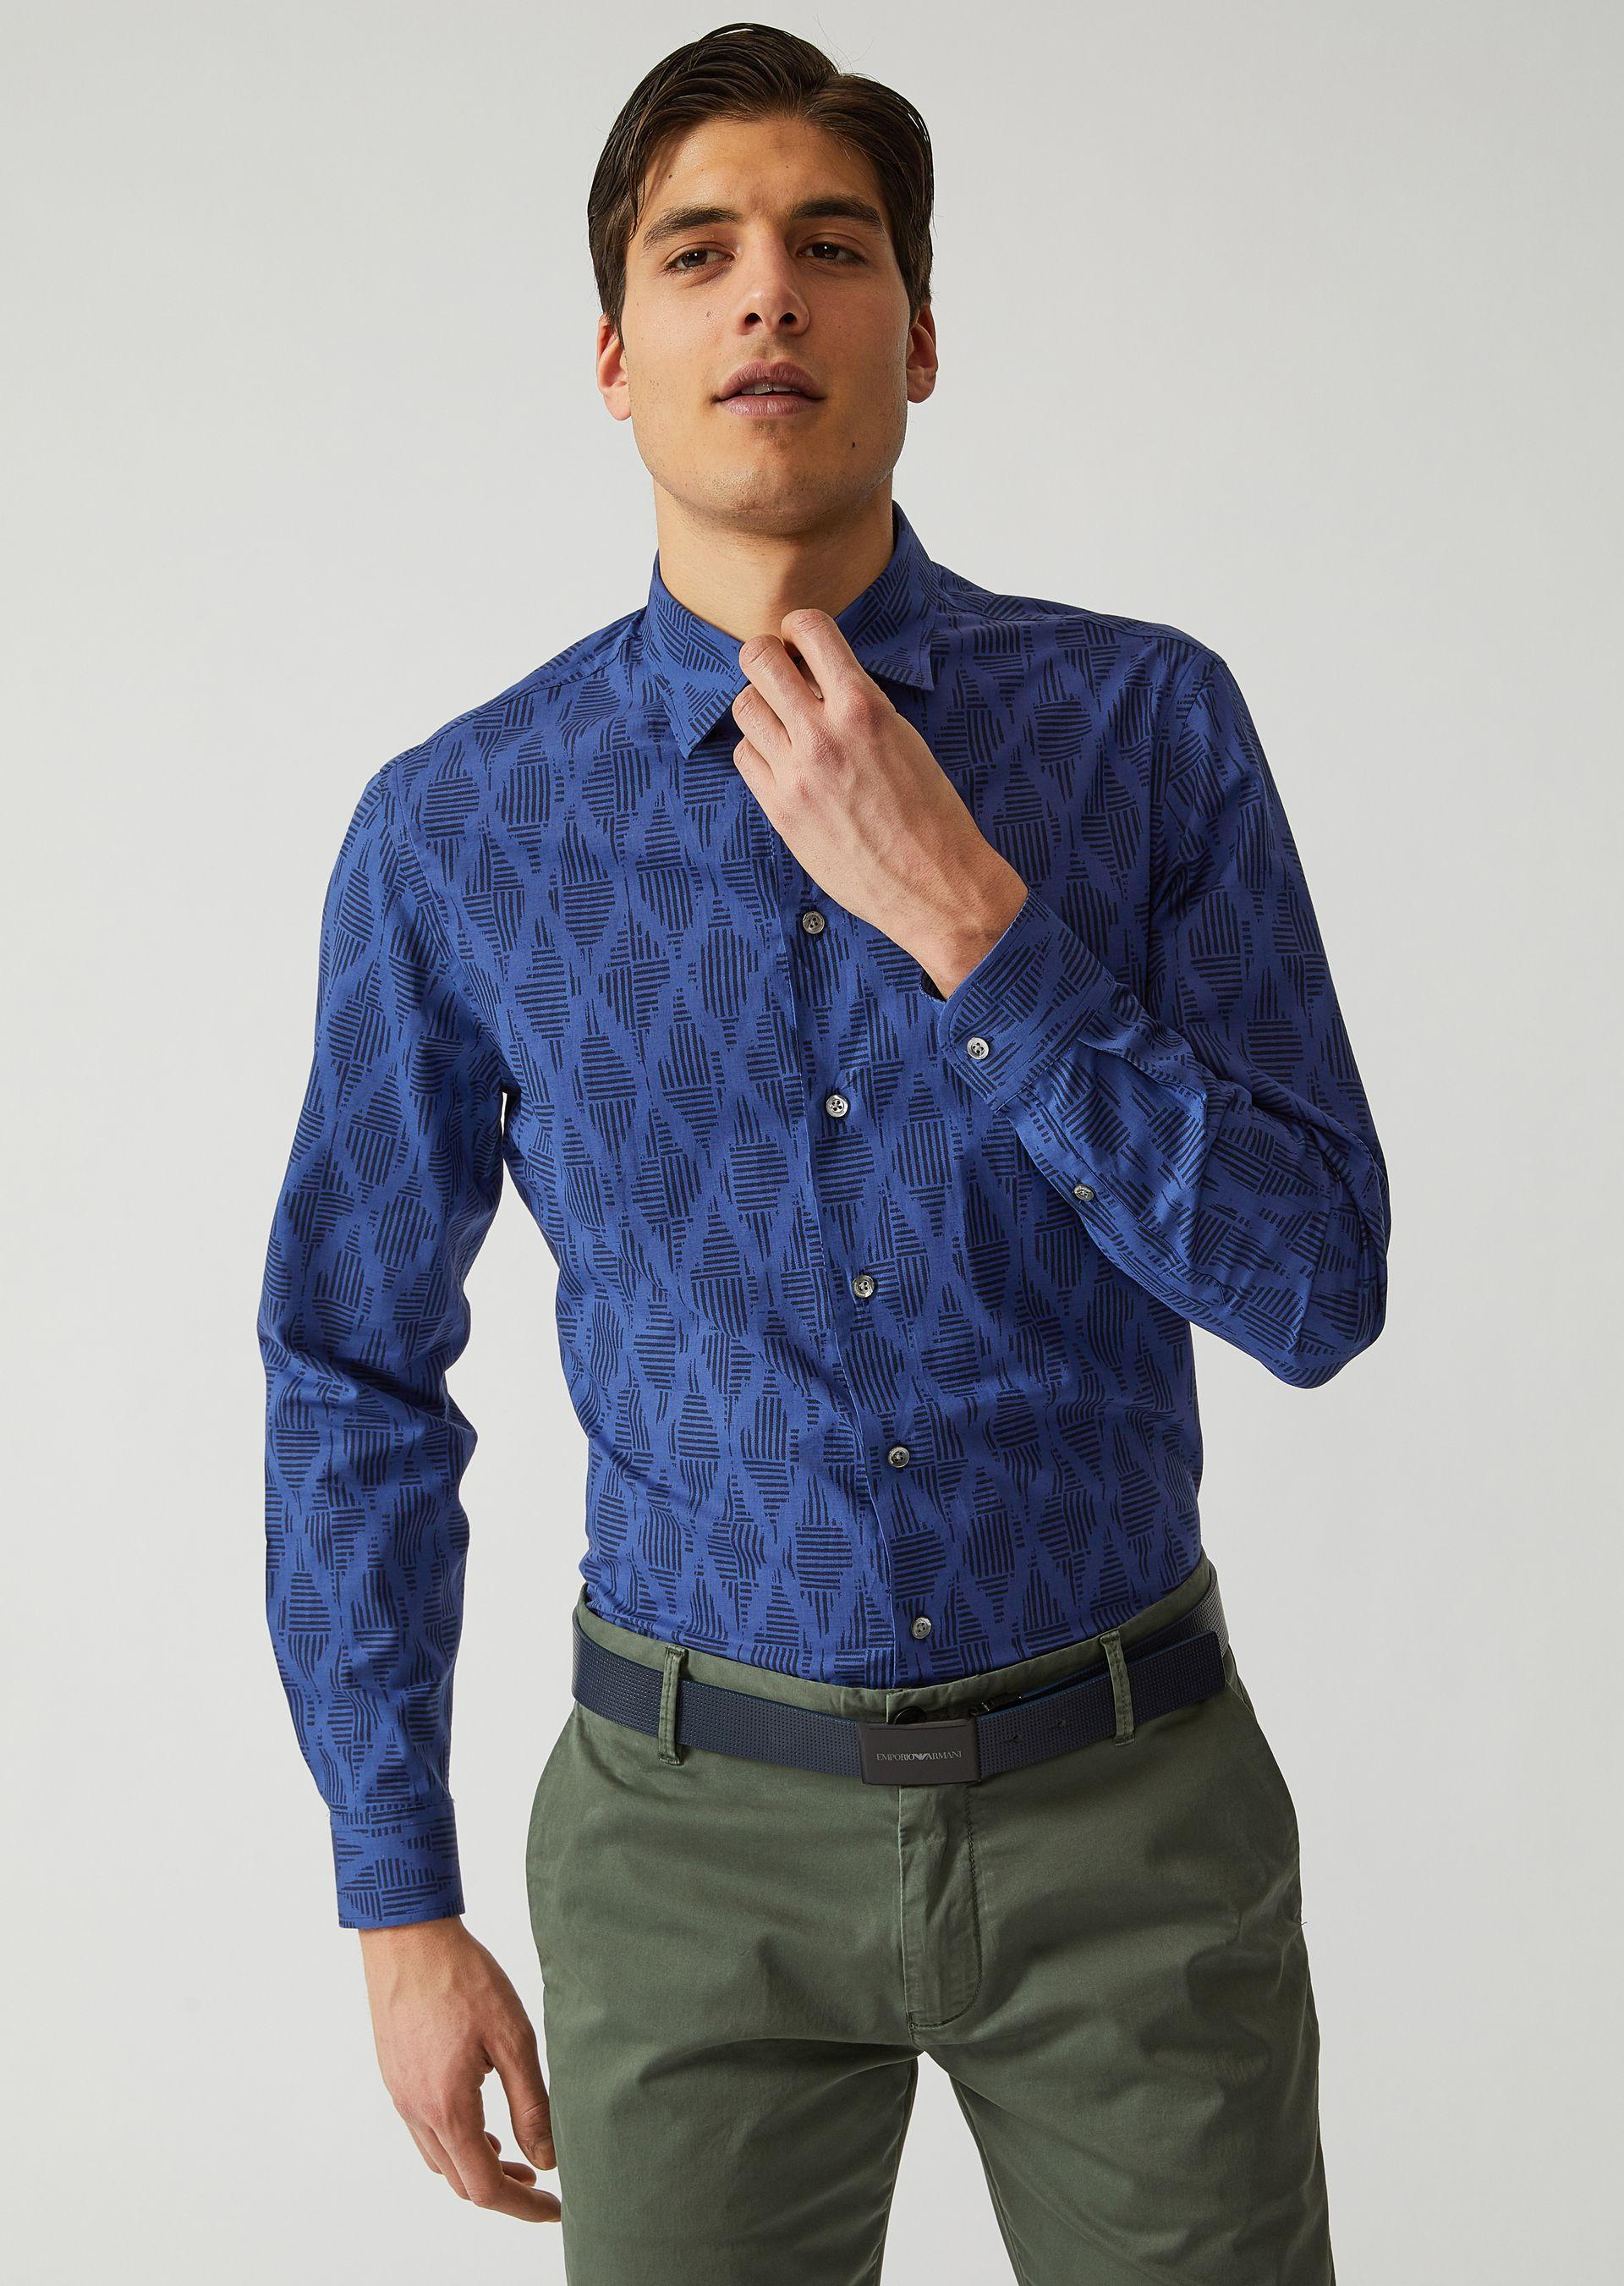 Emporio Armani Casual Shirts - Item 38729862 In Blue